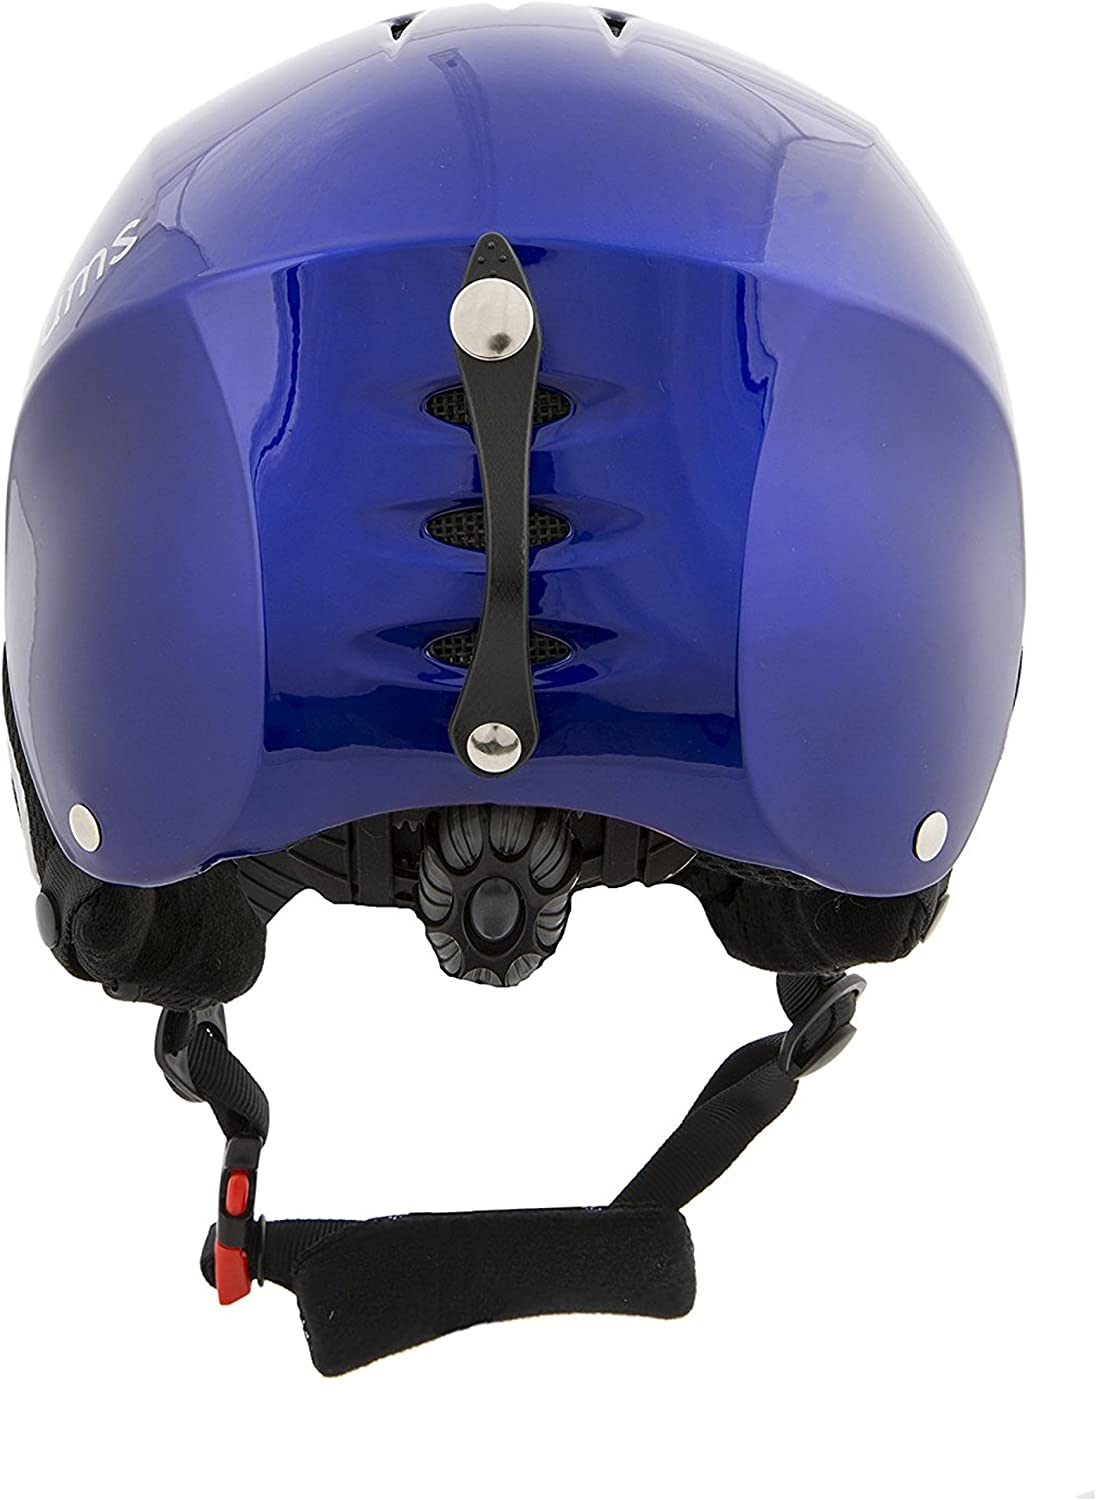 Multiple Sizes and Colors Lucky Bum Adult Snow Ski Helmet